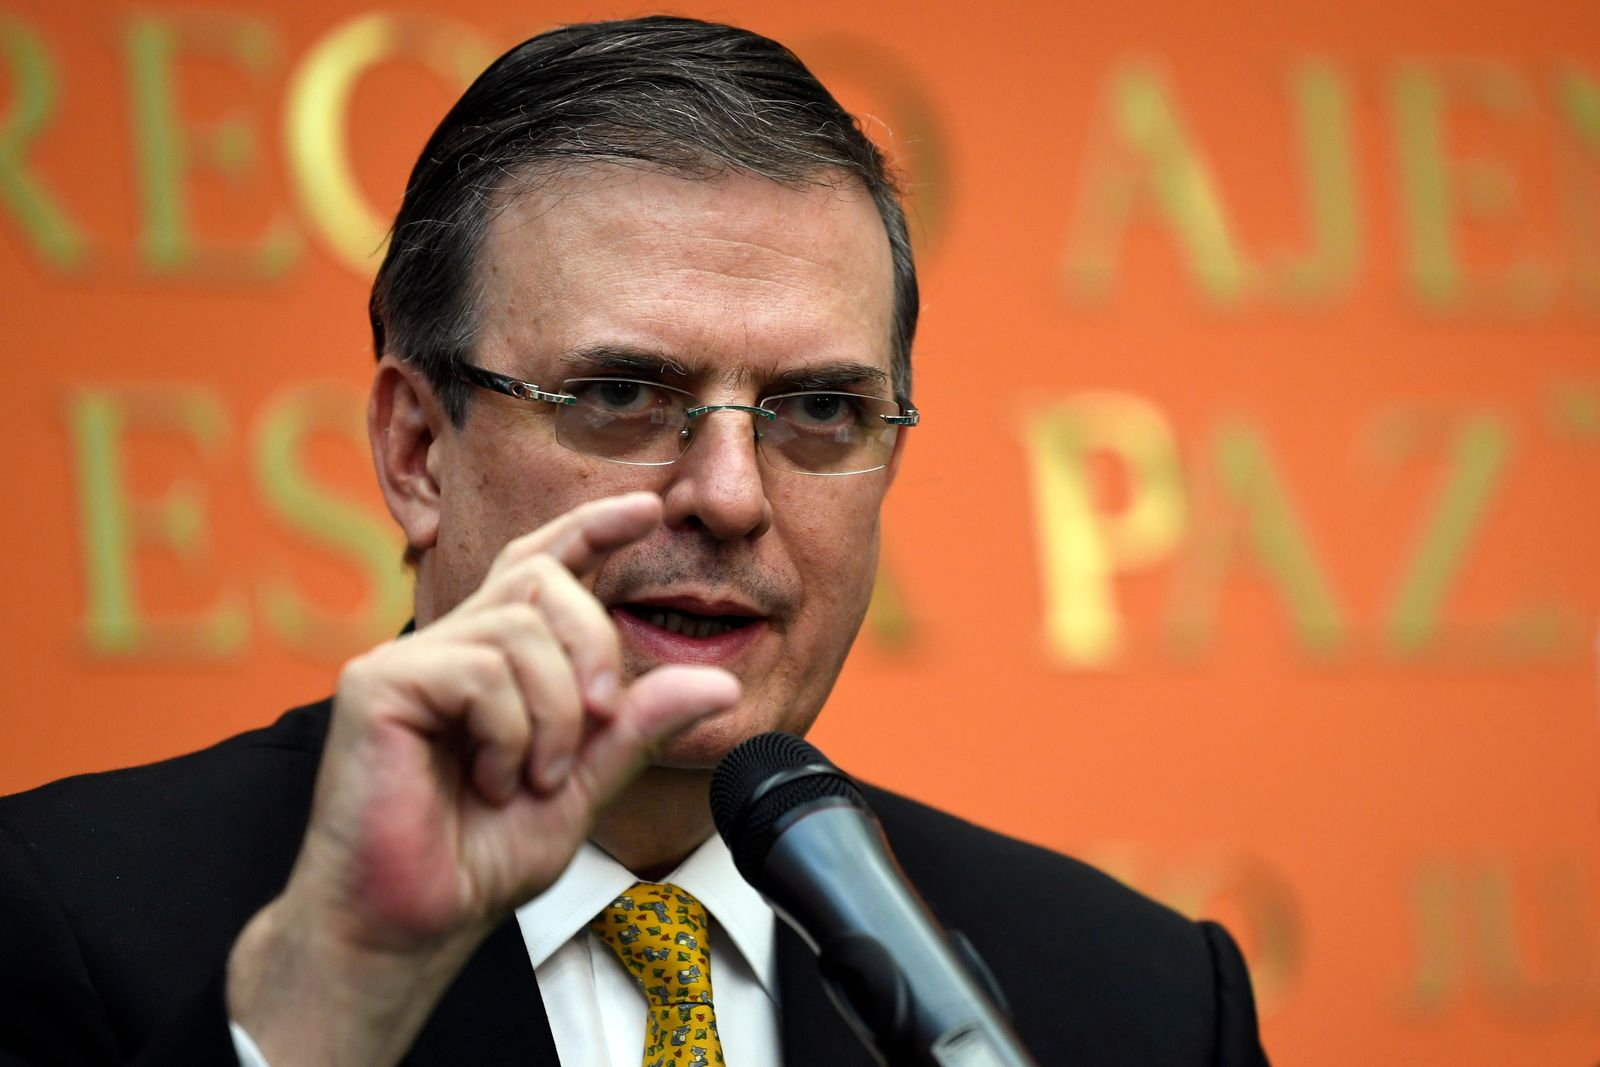 Mexican Foreign Minister Marcelo Ebrard speaks during a news conference at the Embassy of Mexico in Washington, Tuesday, Sept. 10, 2019. (AP Photo/Susan Walsh)